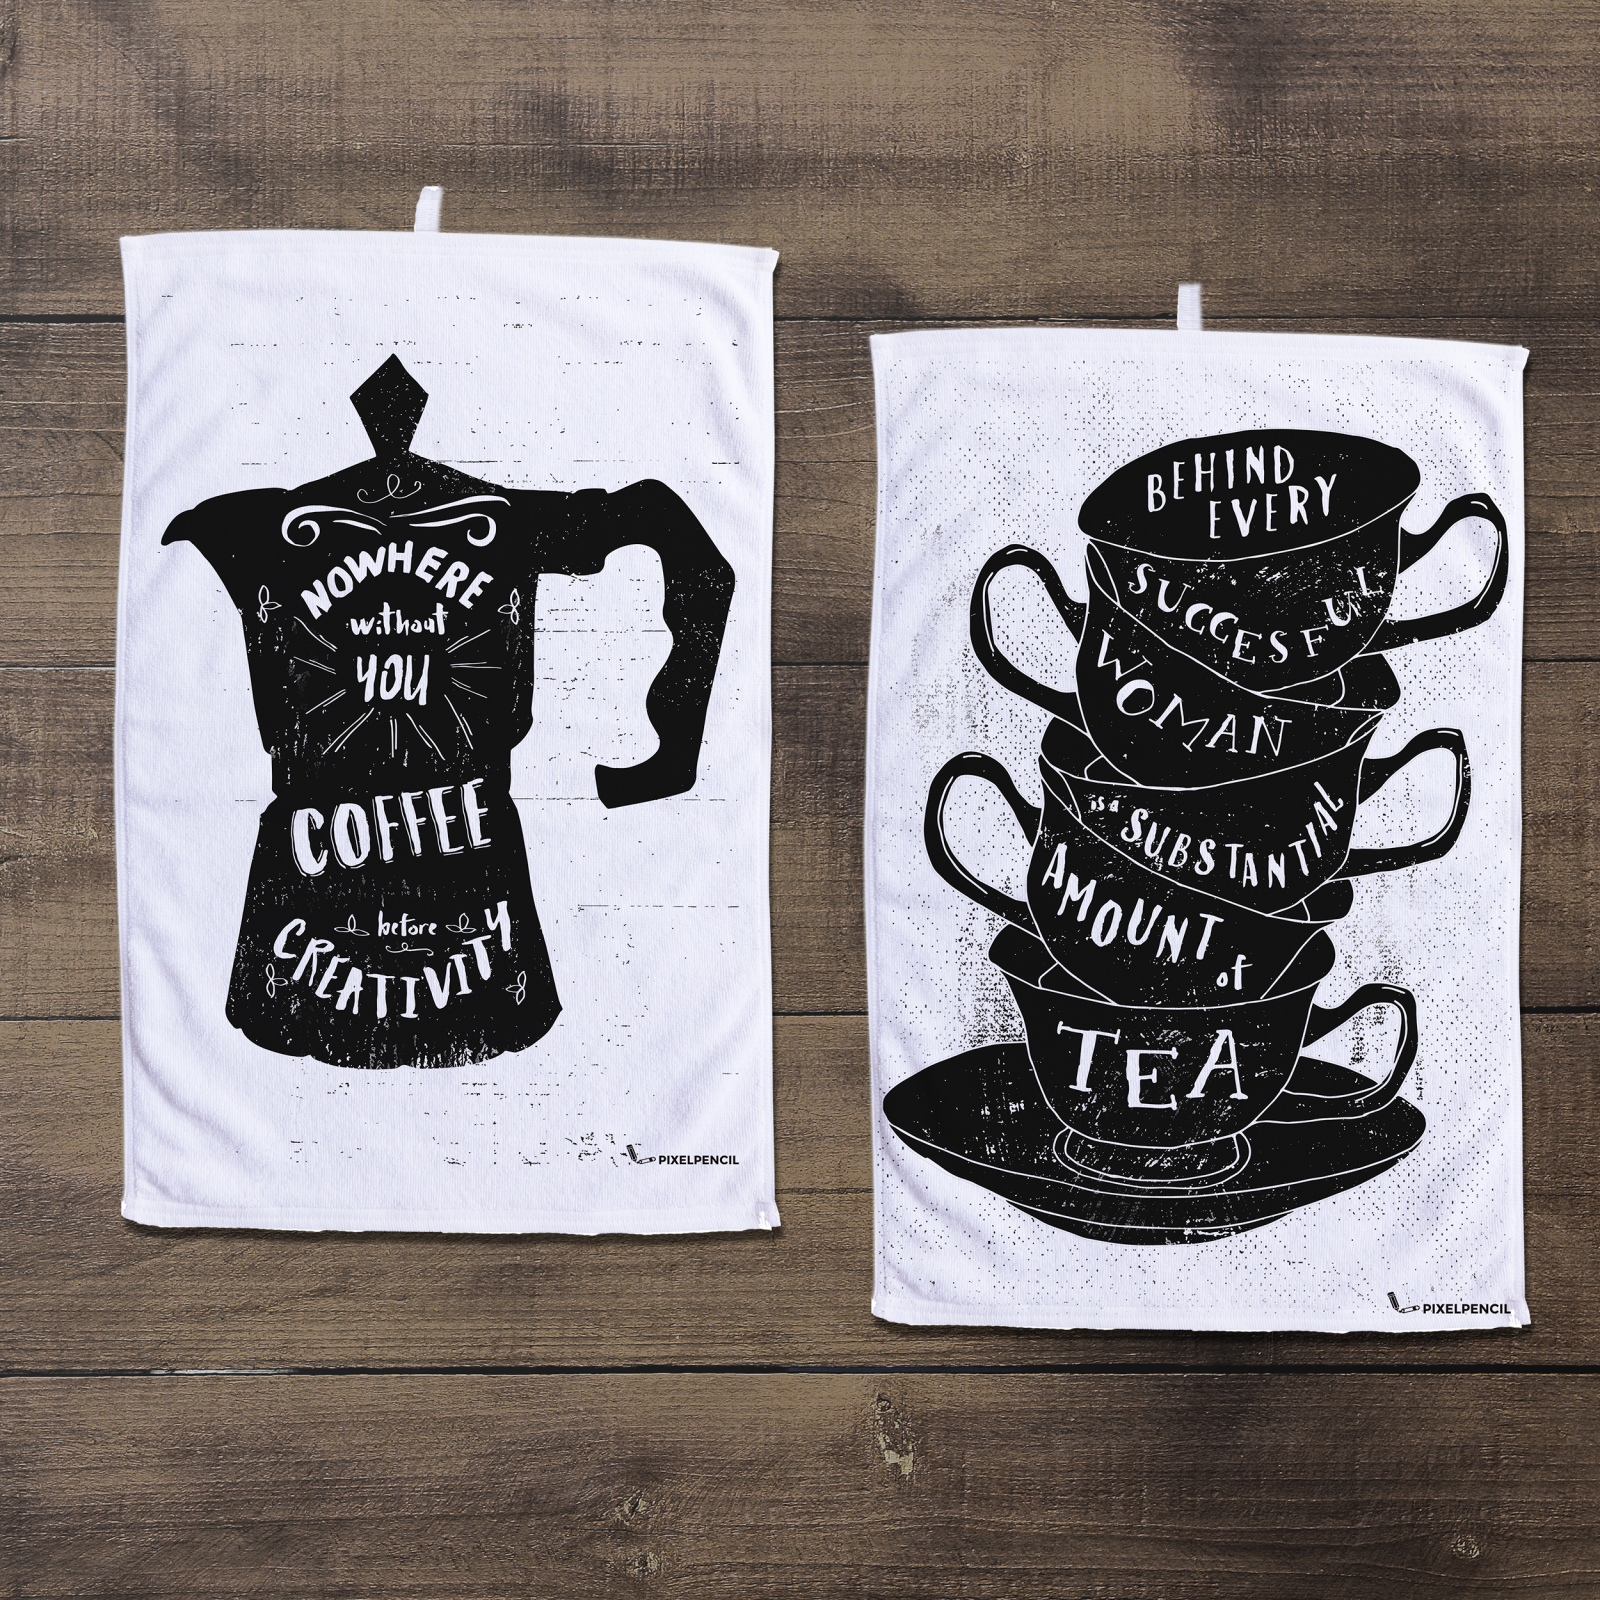 Quote illustrations on tea towels